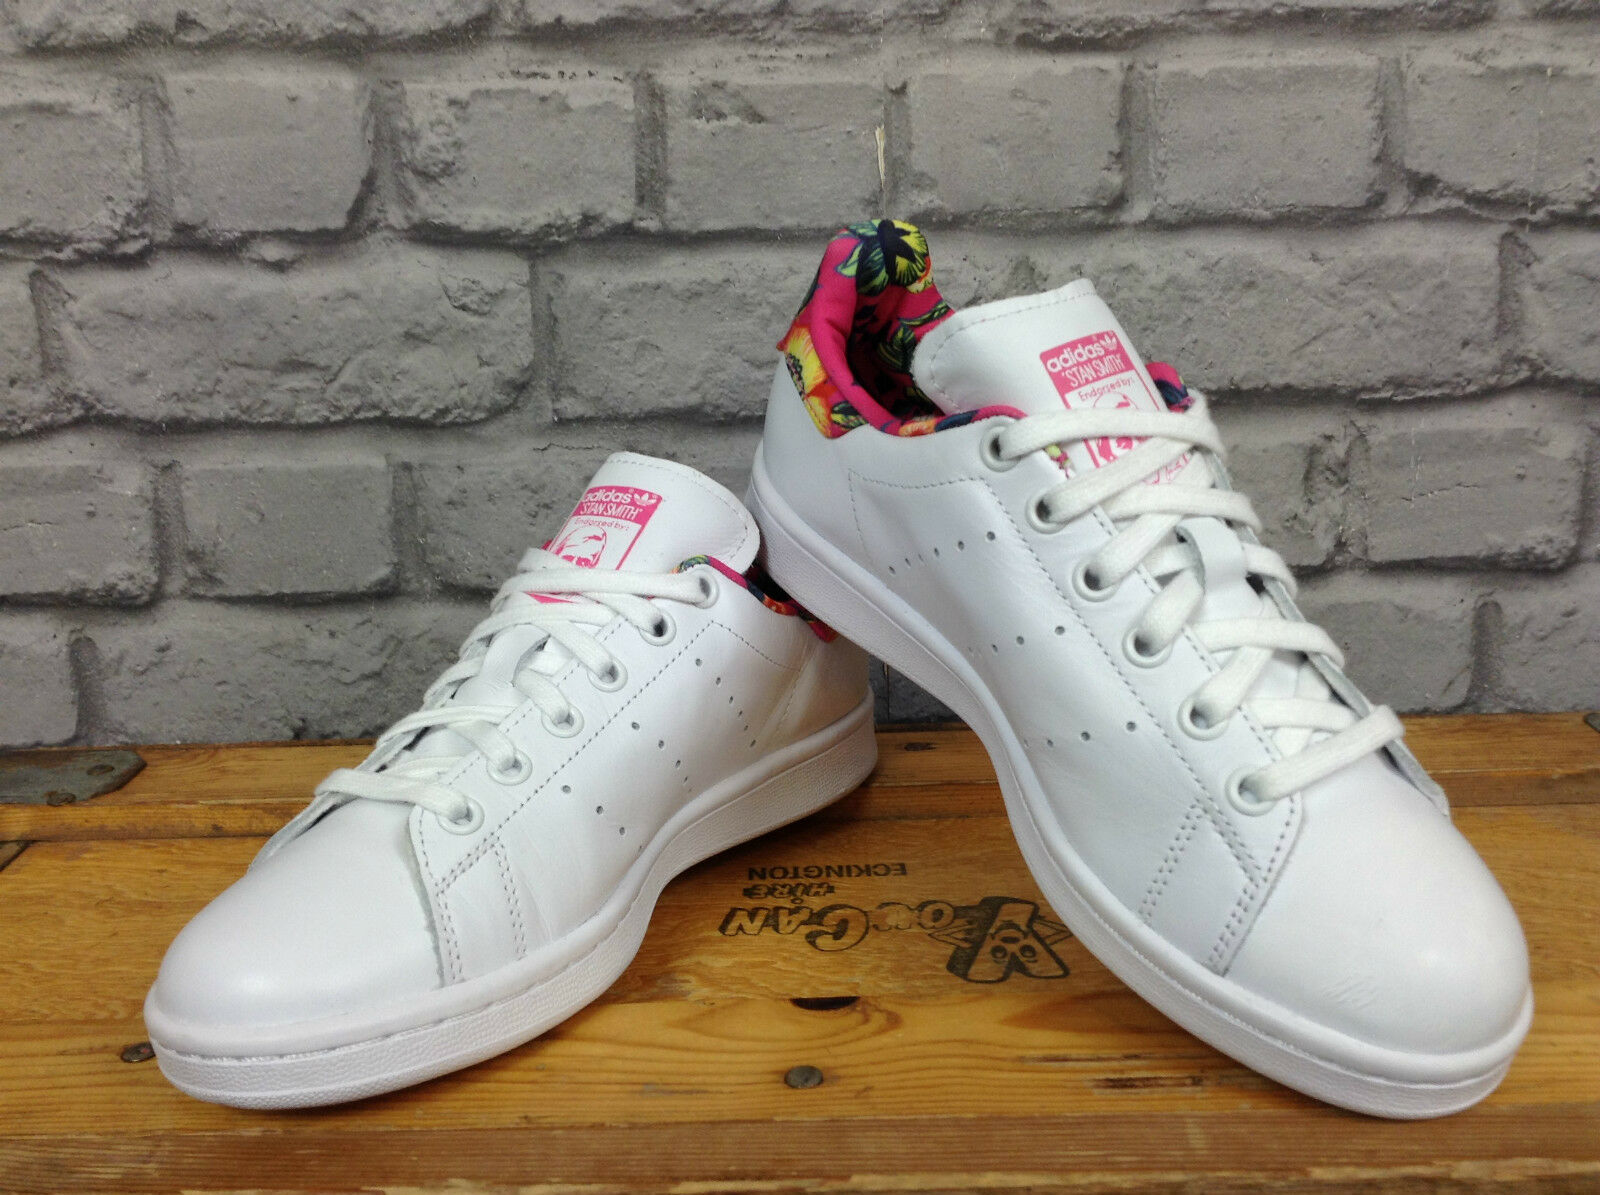 Adidas femmes uk 3 1/2 stan smith rose tropical en cuir blanc baskets * rare *